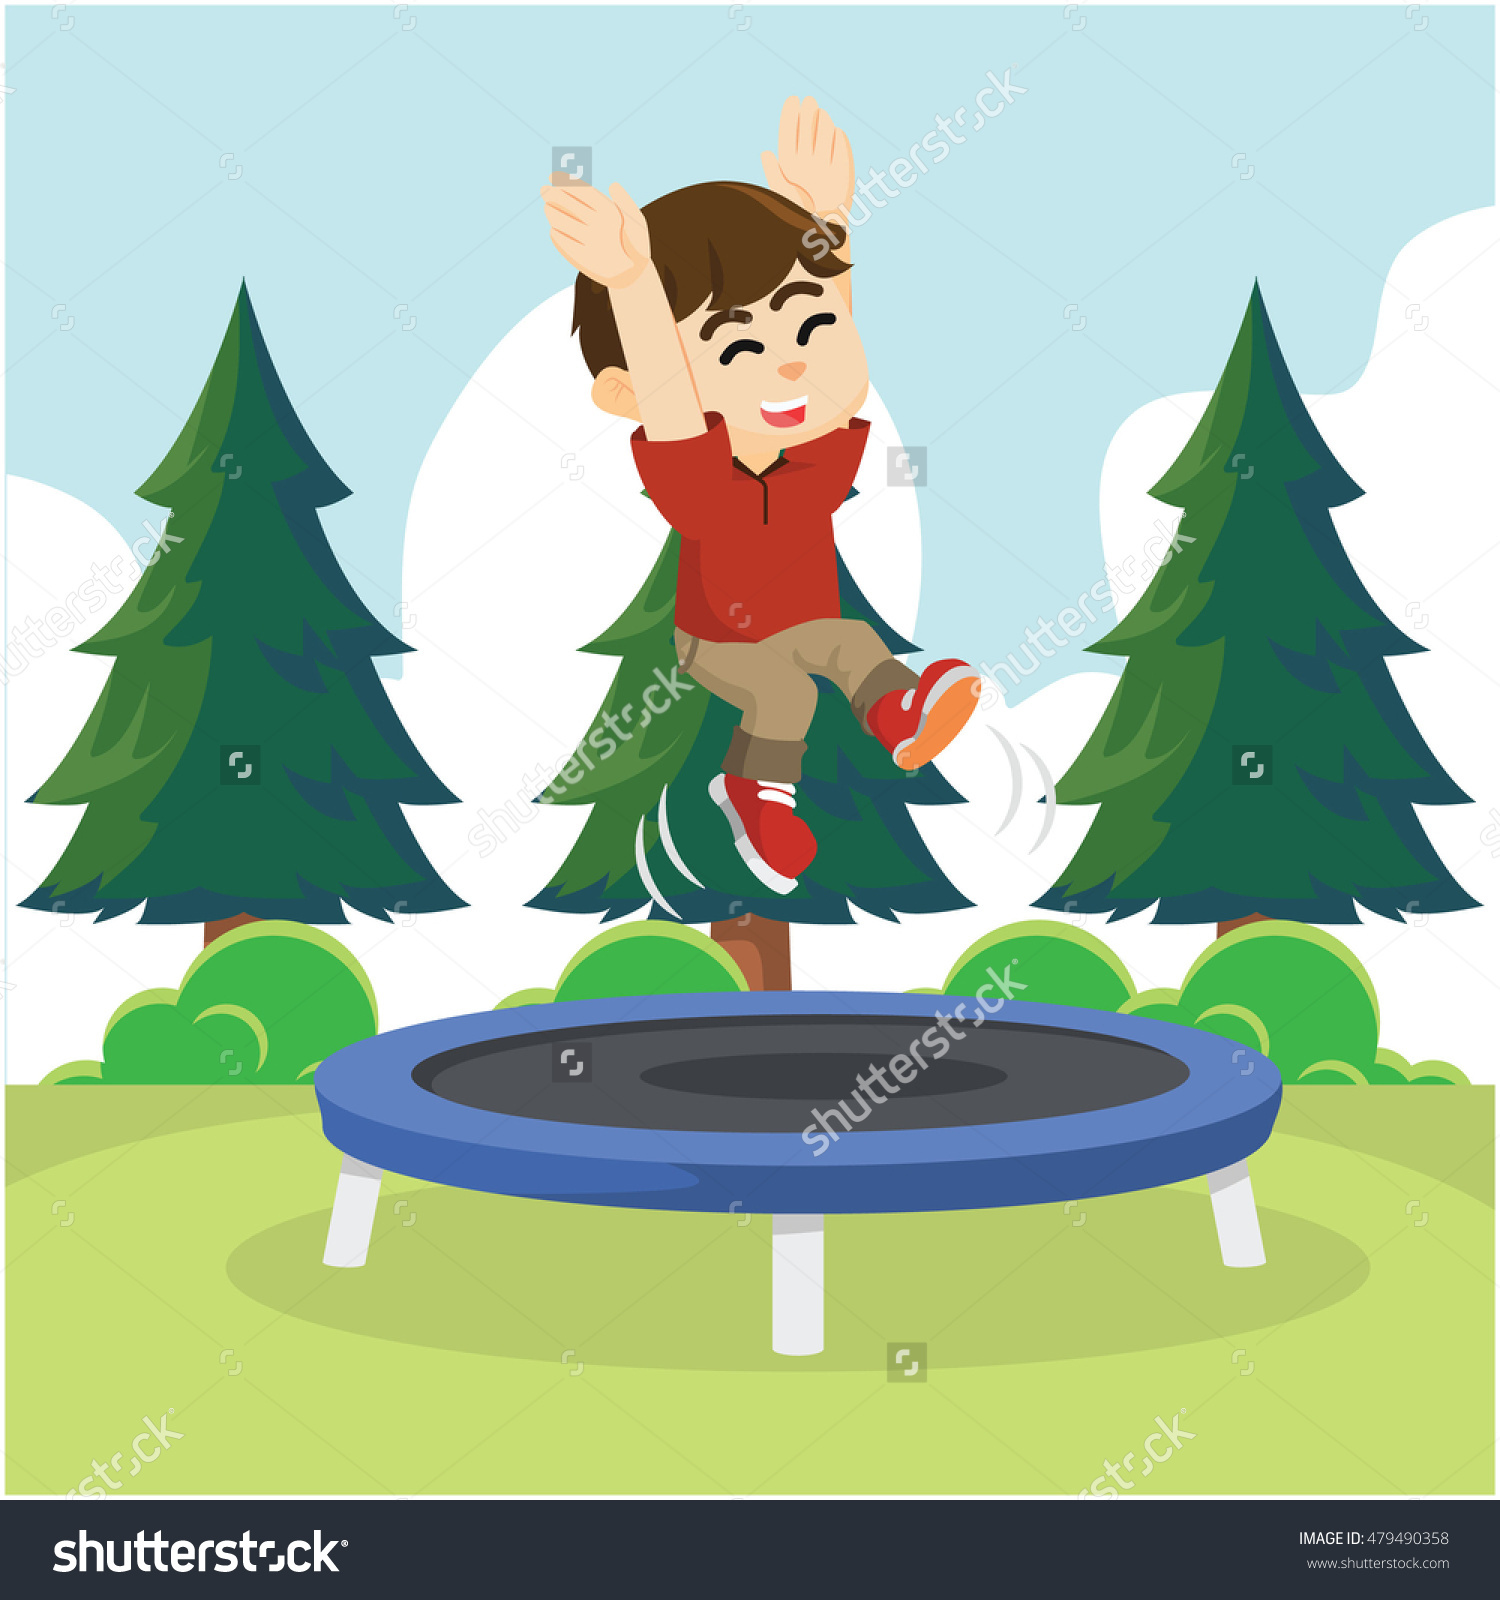 Boy Cheerful Jumping On Trampoline Stock Vector 479490358.